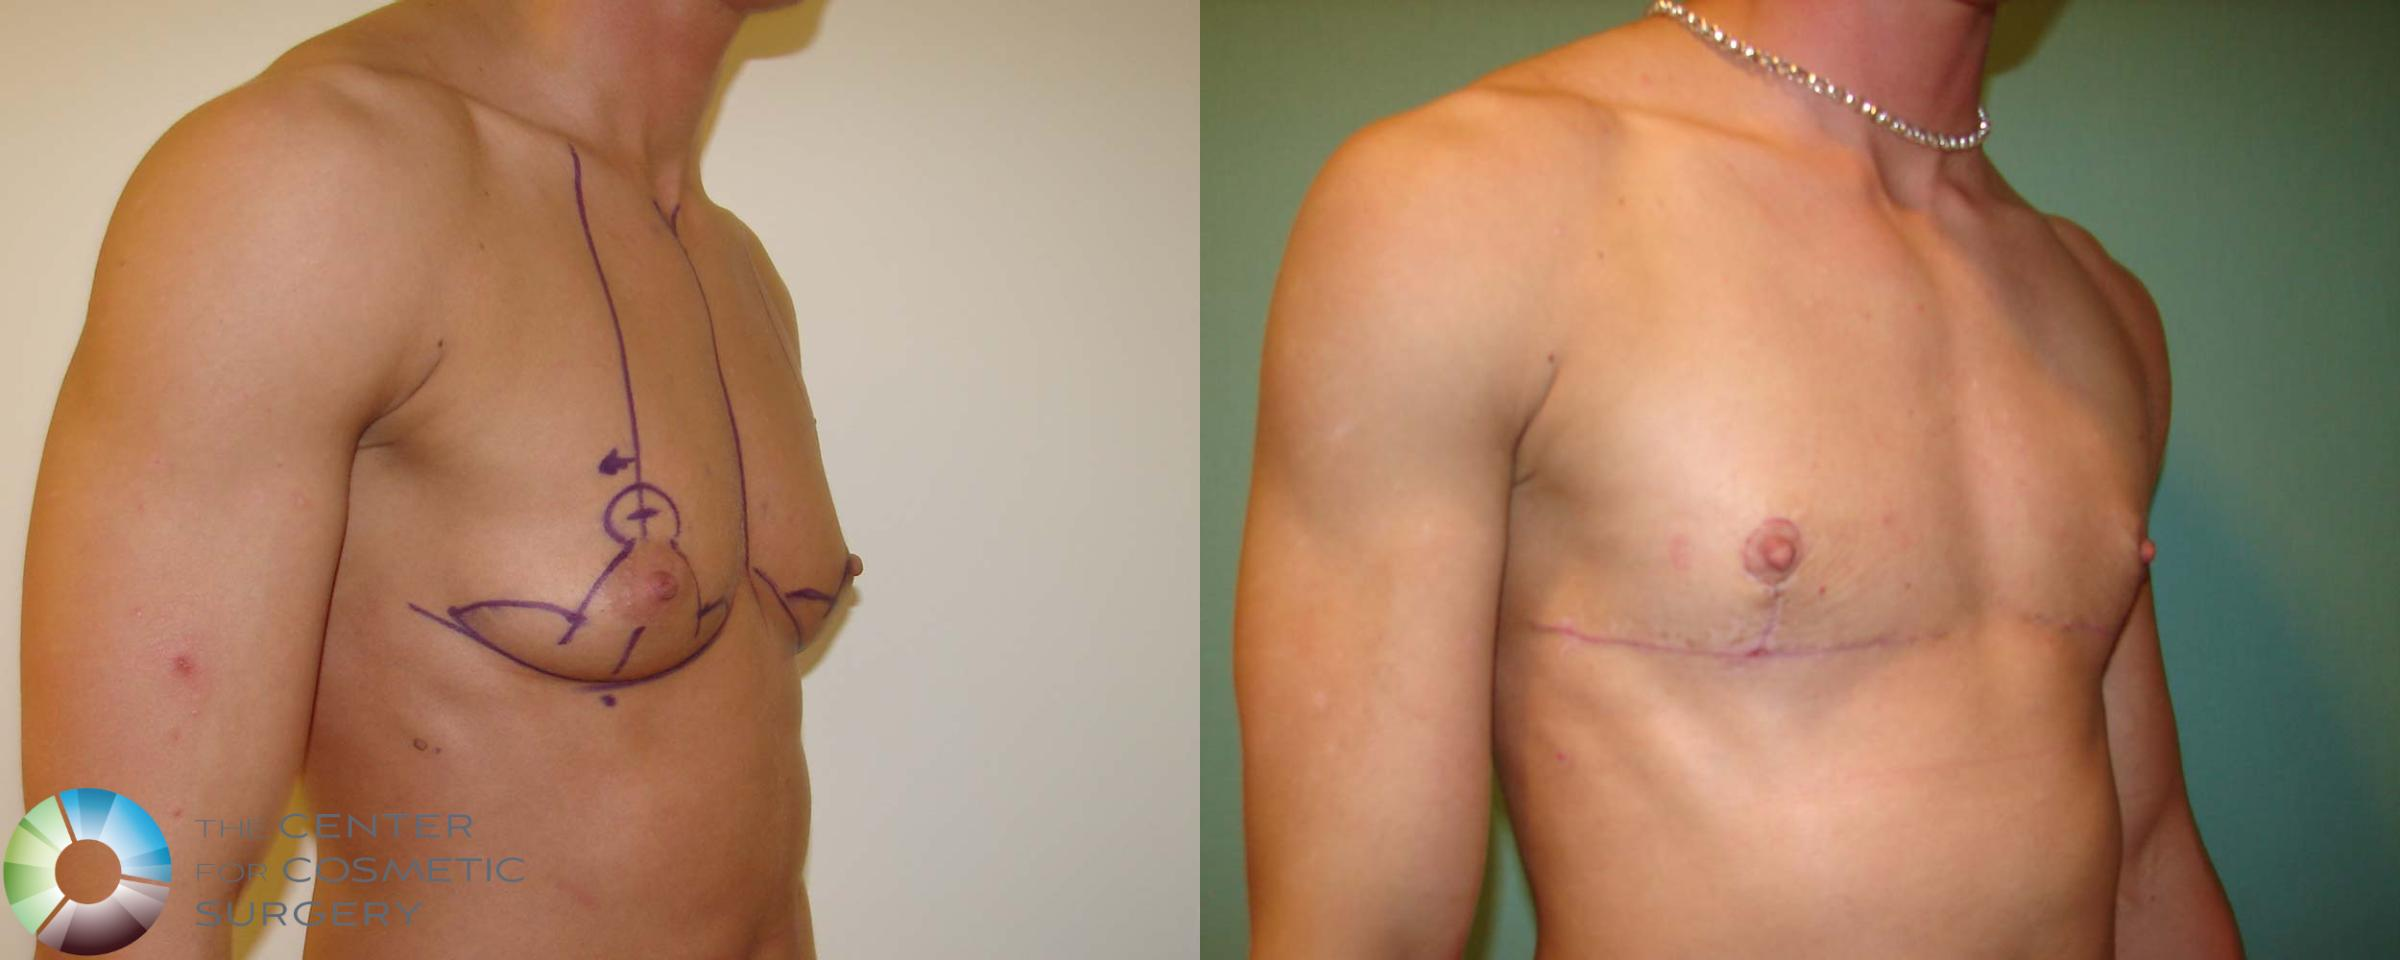 FTM Top Surgery/Chest Masculinization Case 672 Before & After View #2 | Denver & Golden, CO | The Center for Cosmetic Surgery